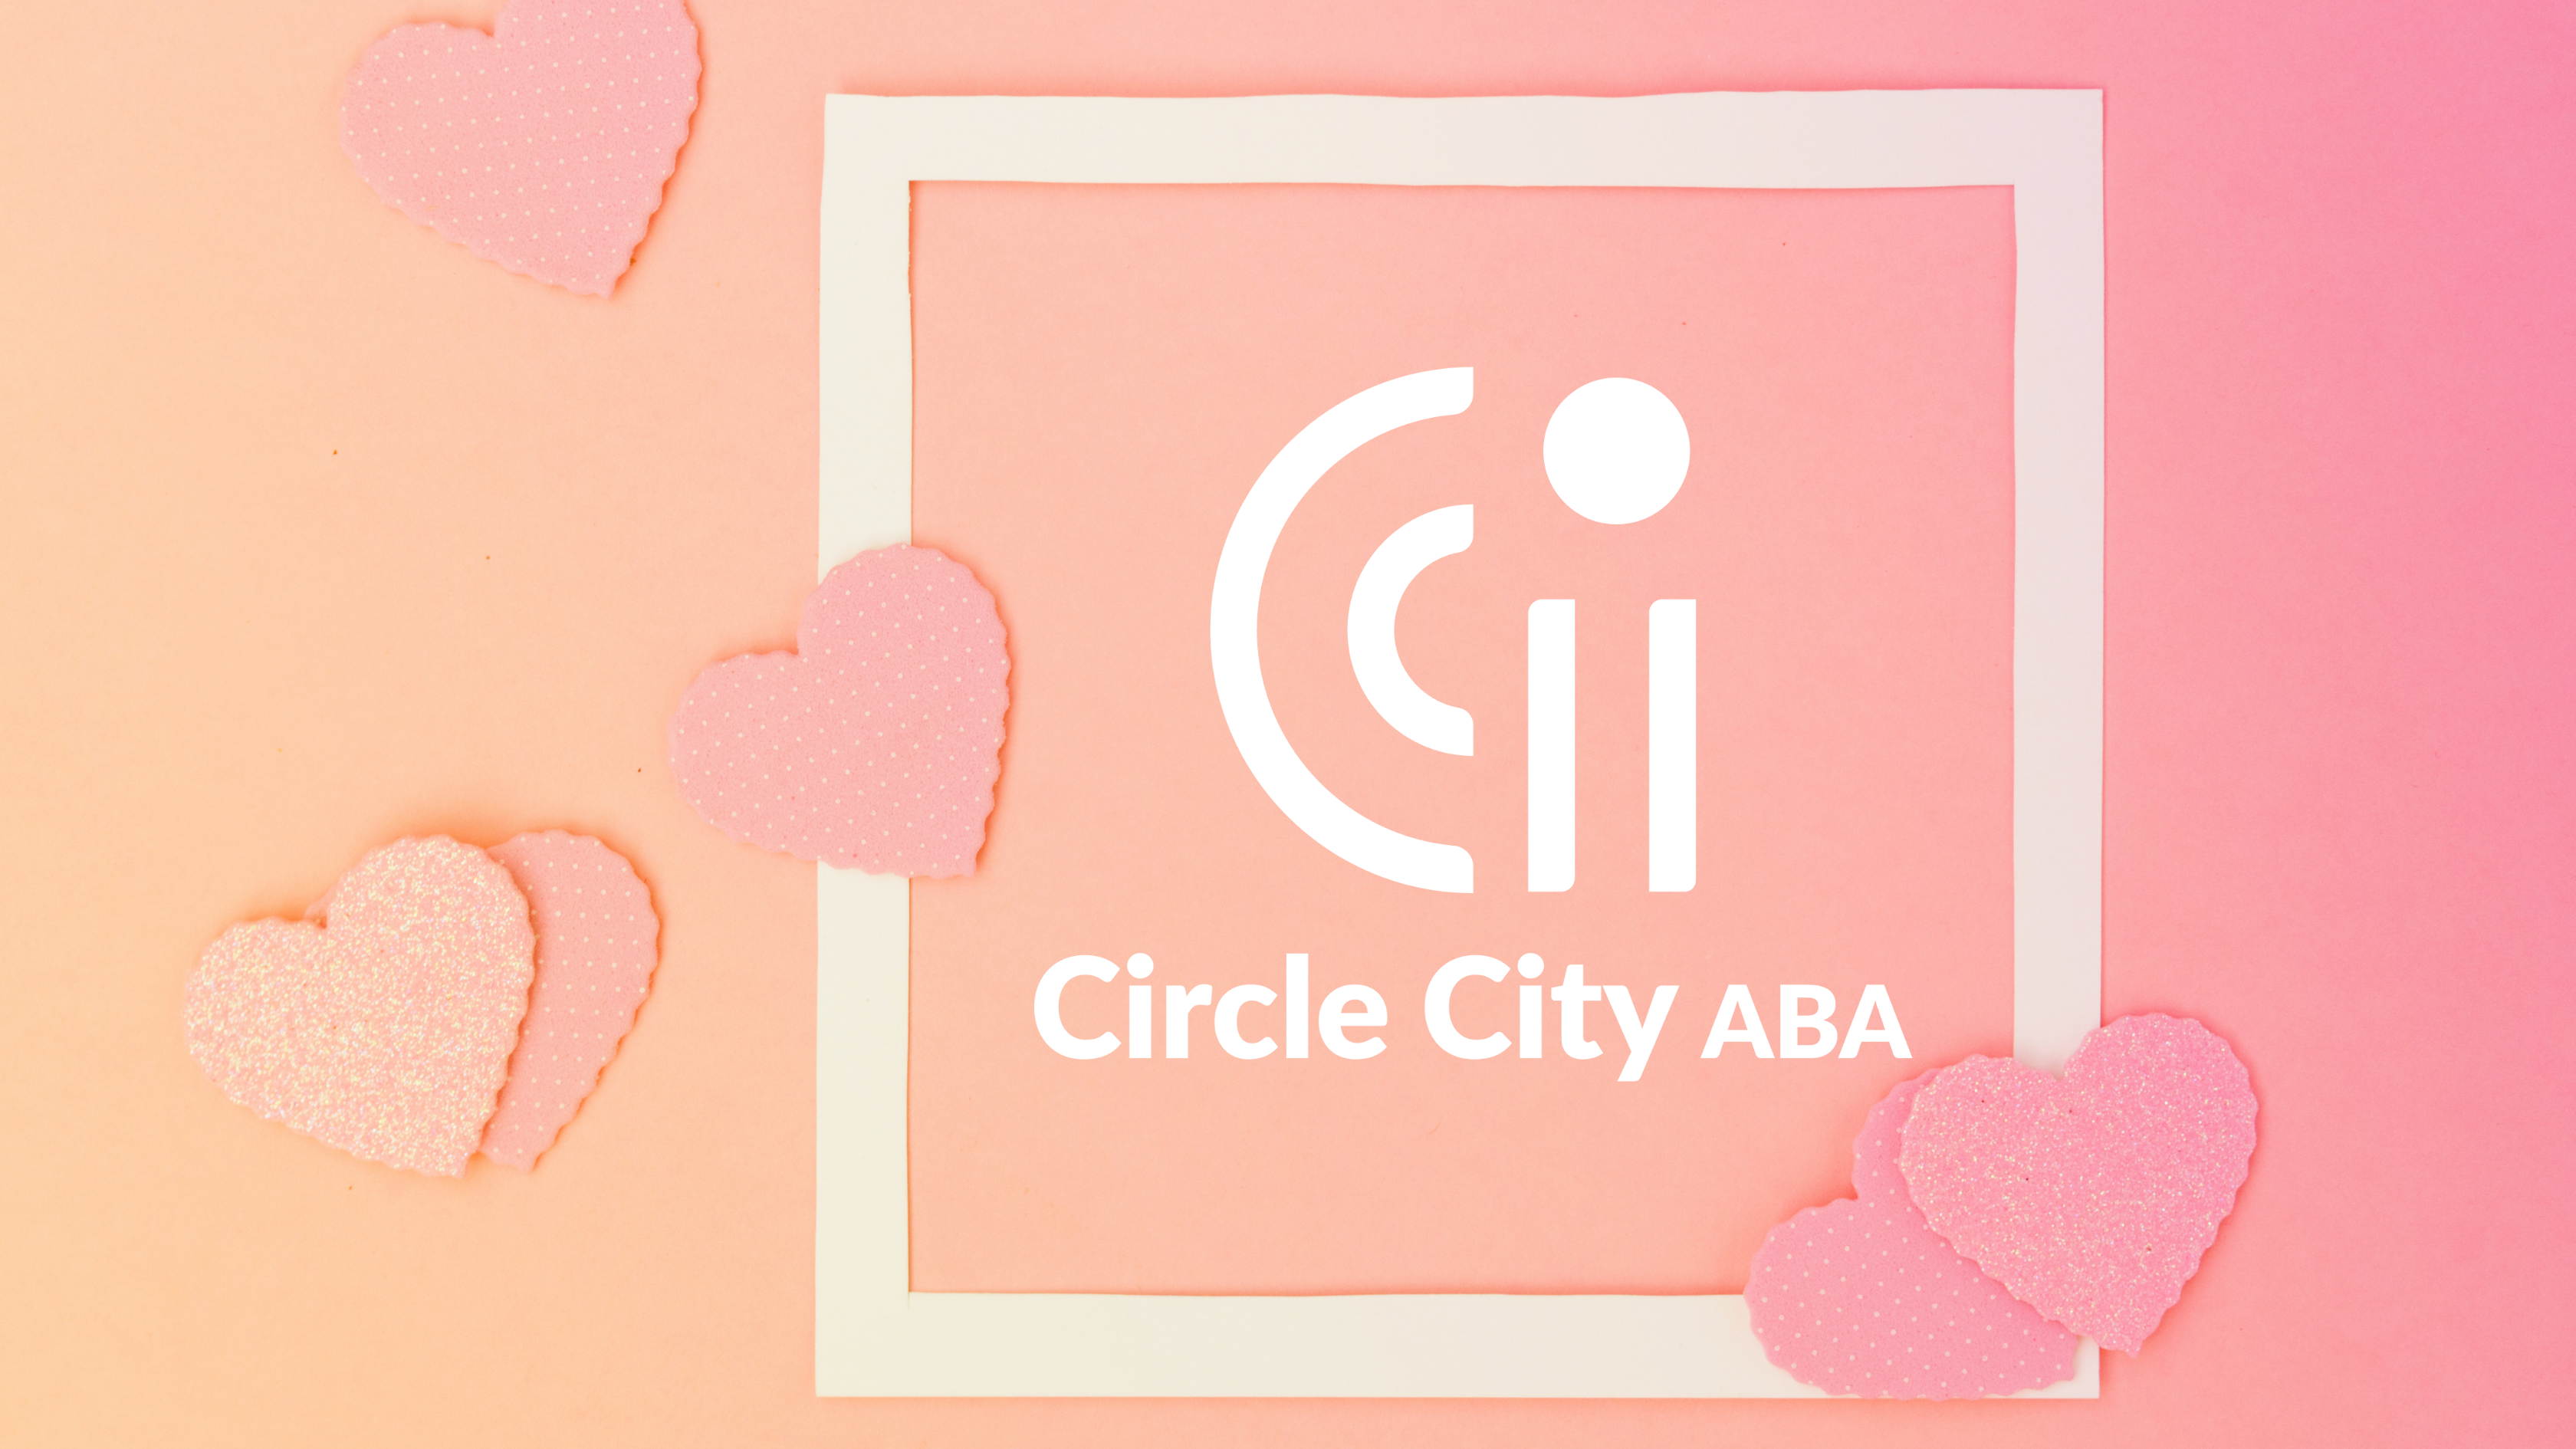 orange pink gradient with hearts and circle city aba logo